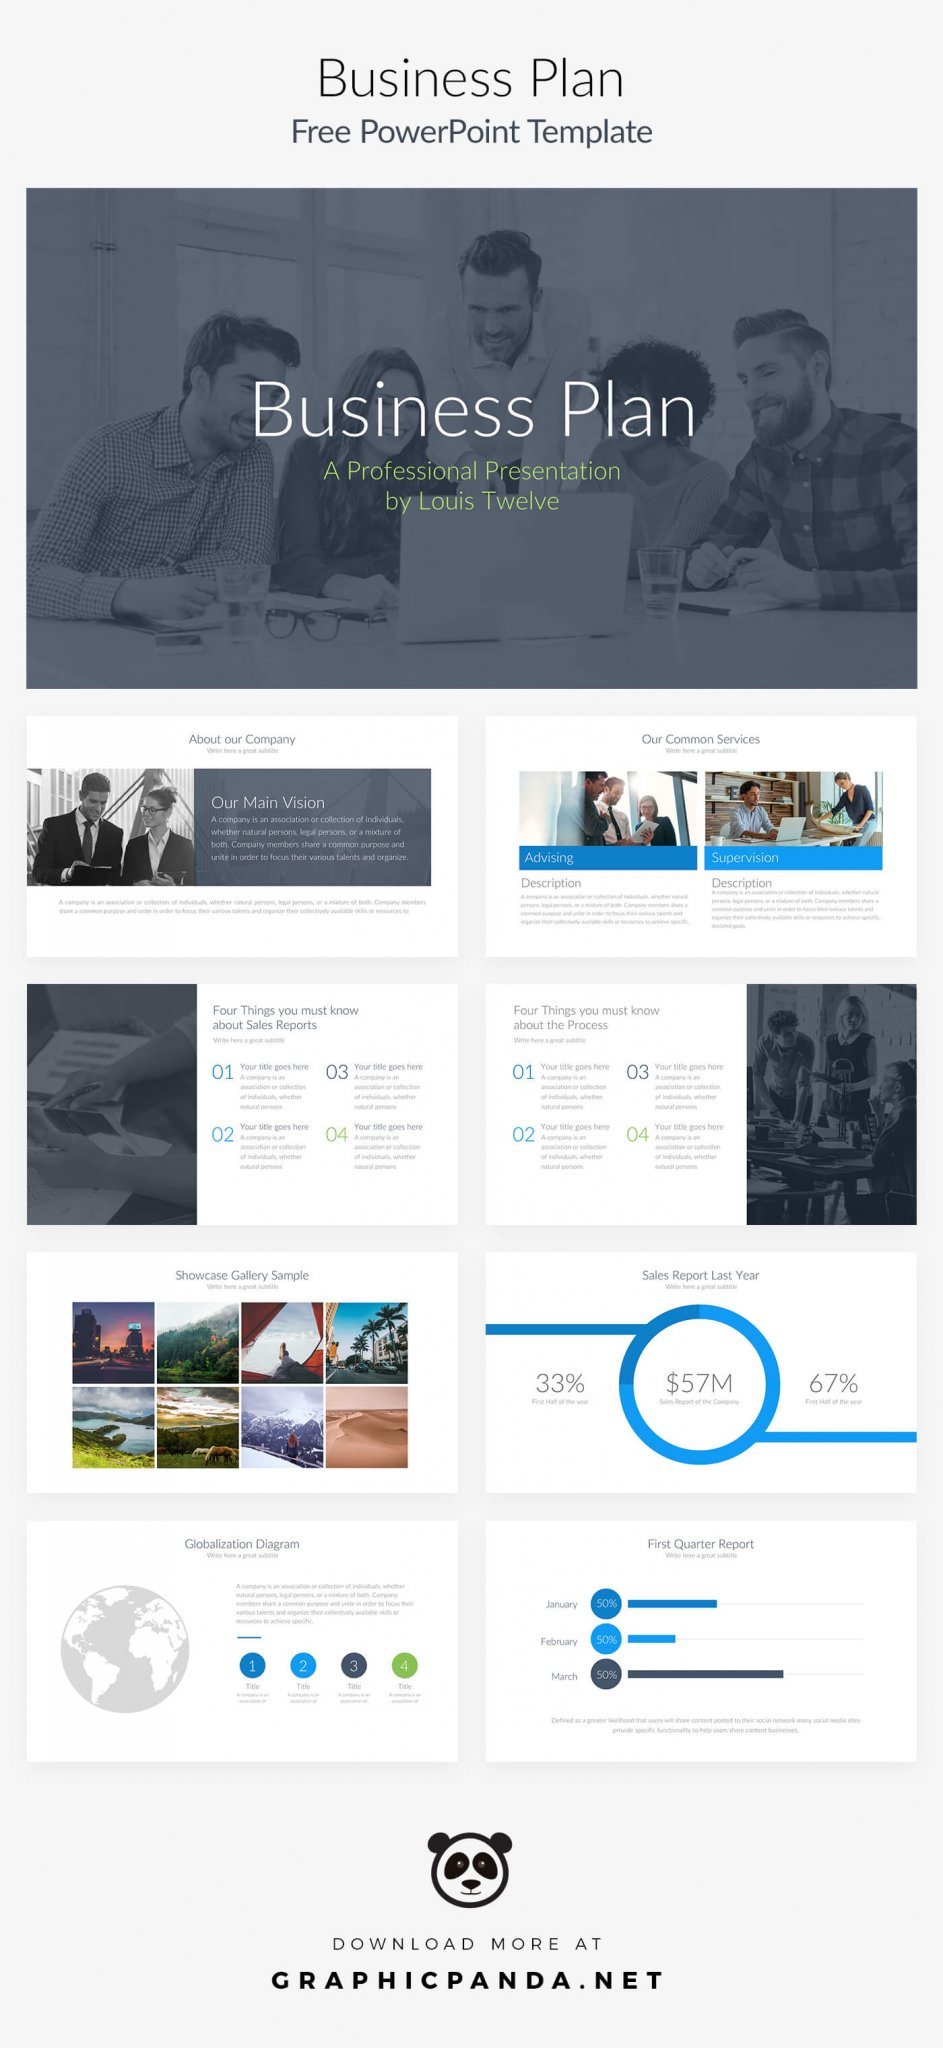 Free business plan powerpoint presentation template business plan free powerpoint themes powerpoint templates friedricerecipe Image collections